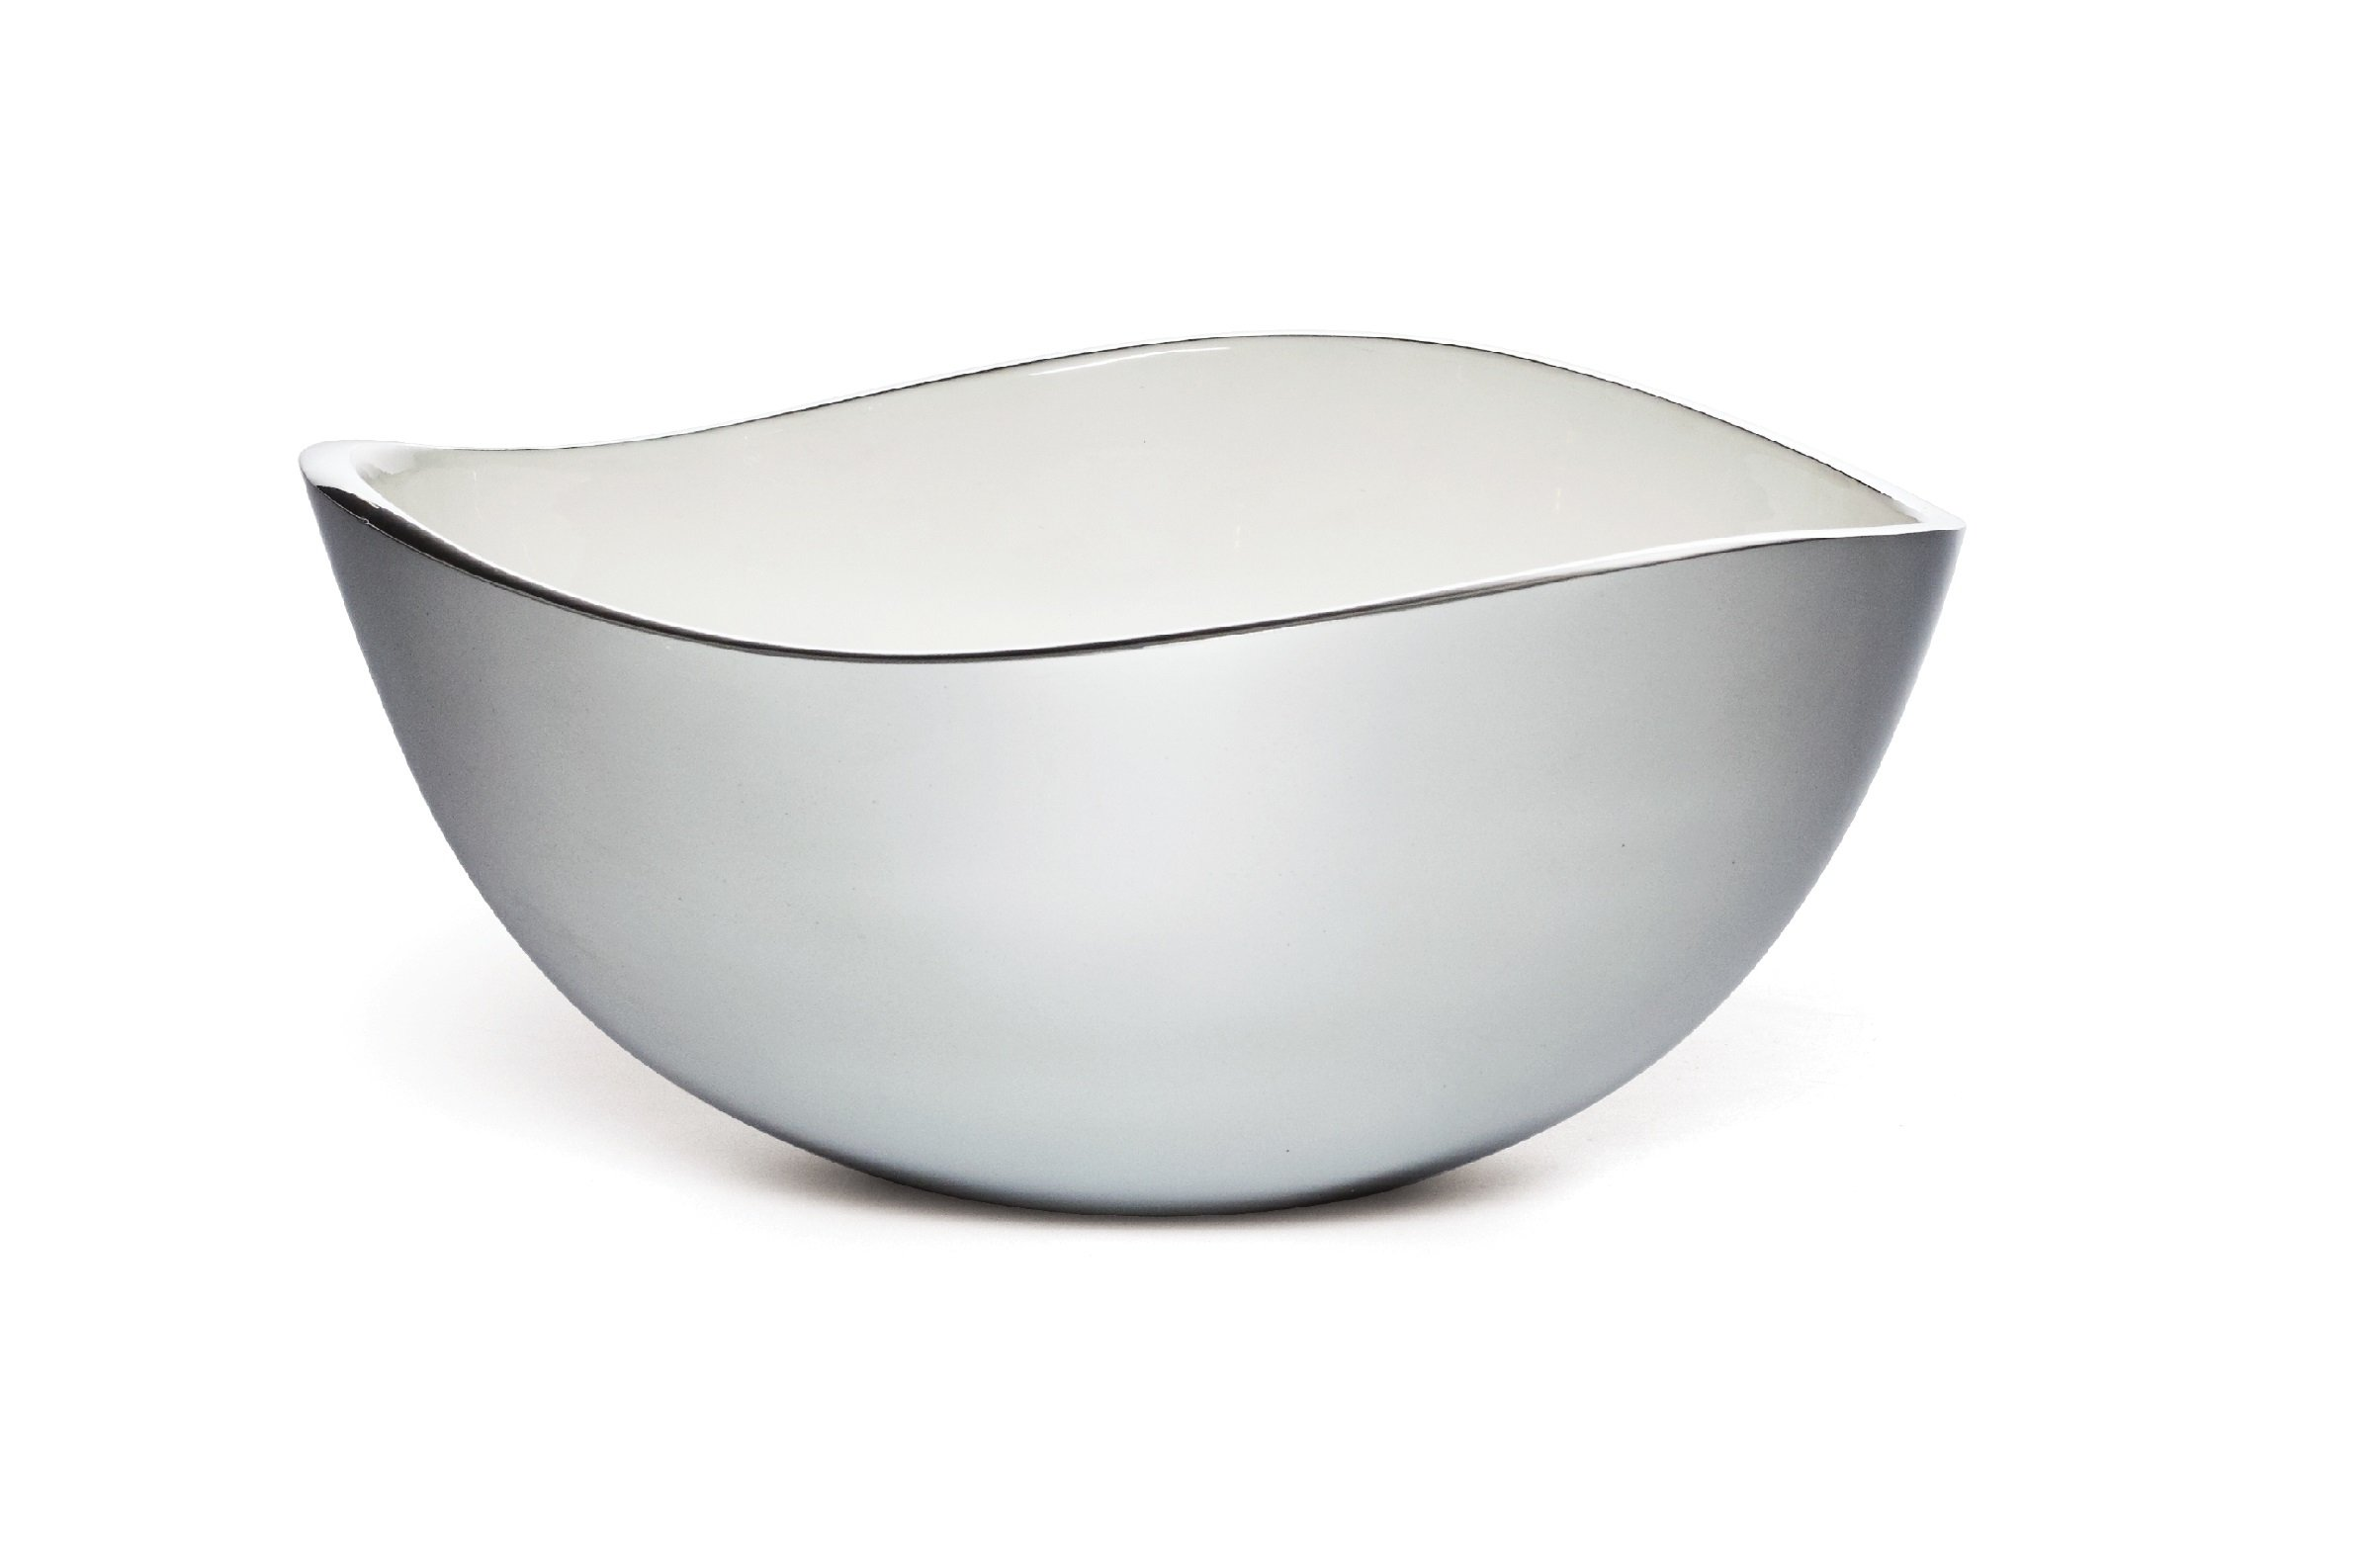 Savora Dimple Aluminum and Enamel Bowl, 10-Inch, Snow